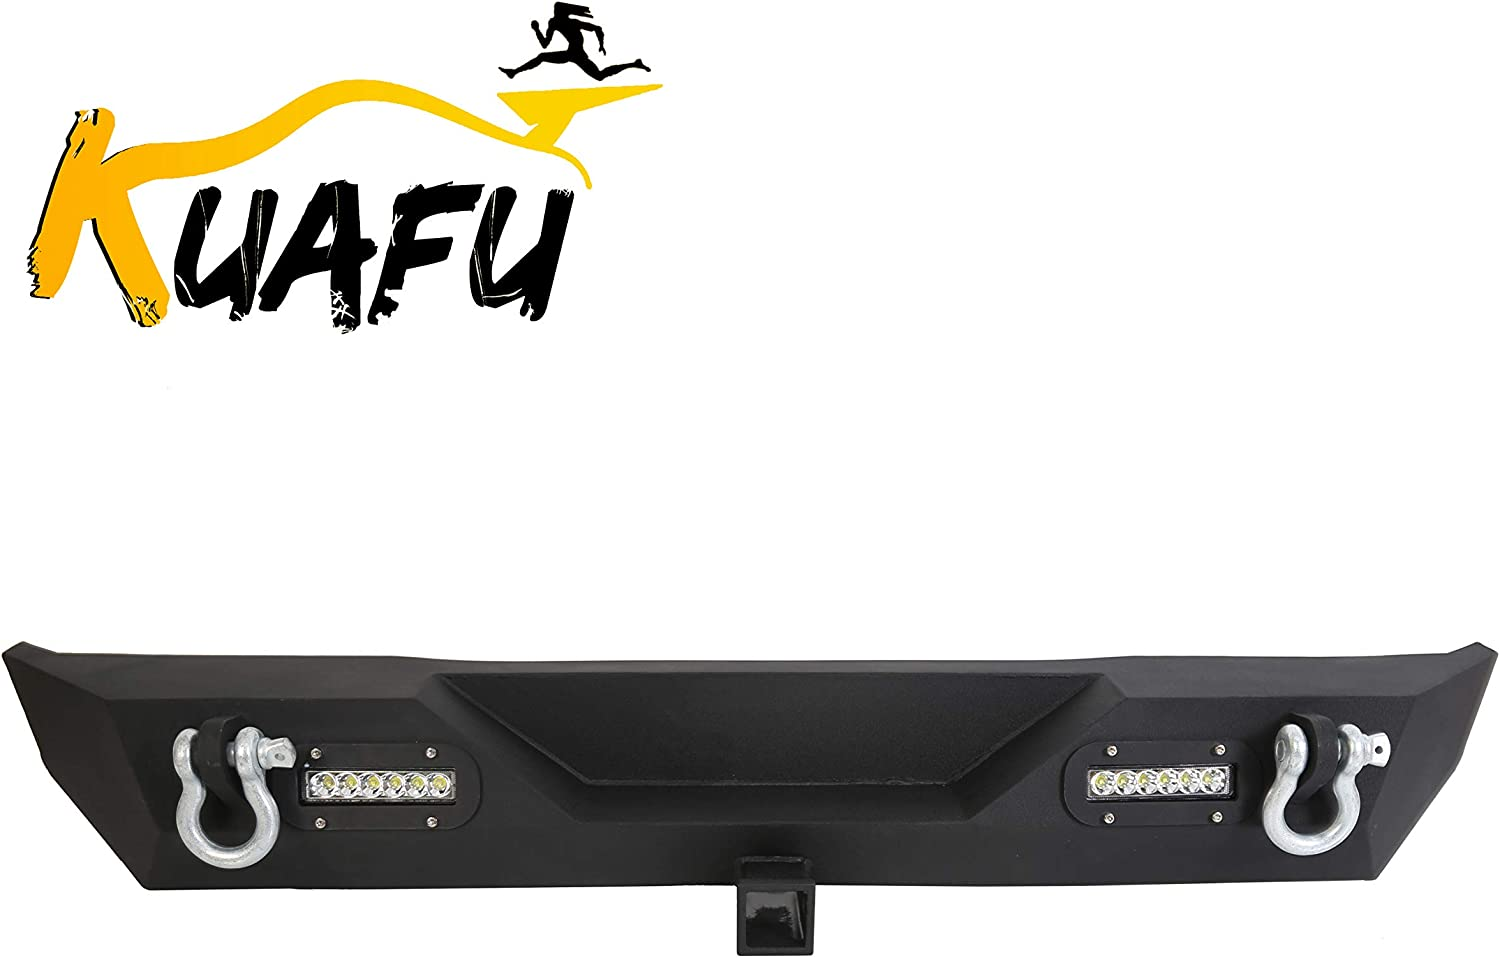 Rear Bumper For 87-06 Jeep Wrangler TJ YJ Unlimited With LED Lights 2 Hitch Receiver D-rings Off-Road Style Black Texture